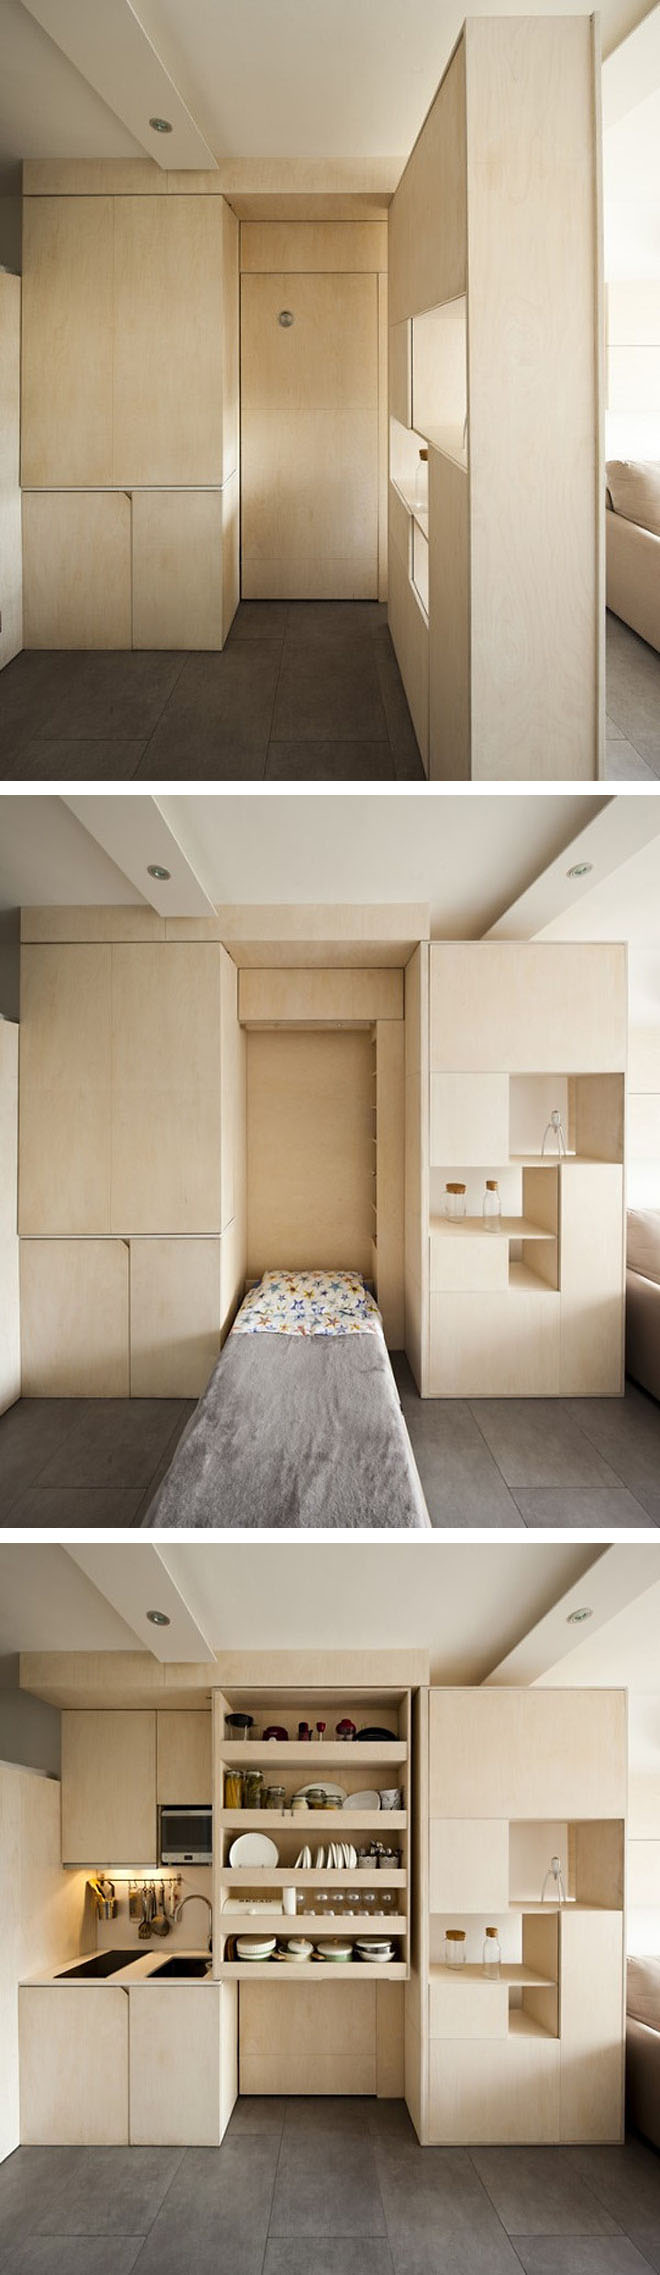 Jetson Green - Micro apartment turned into a family home with ...